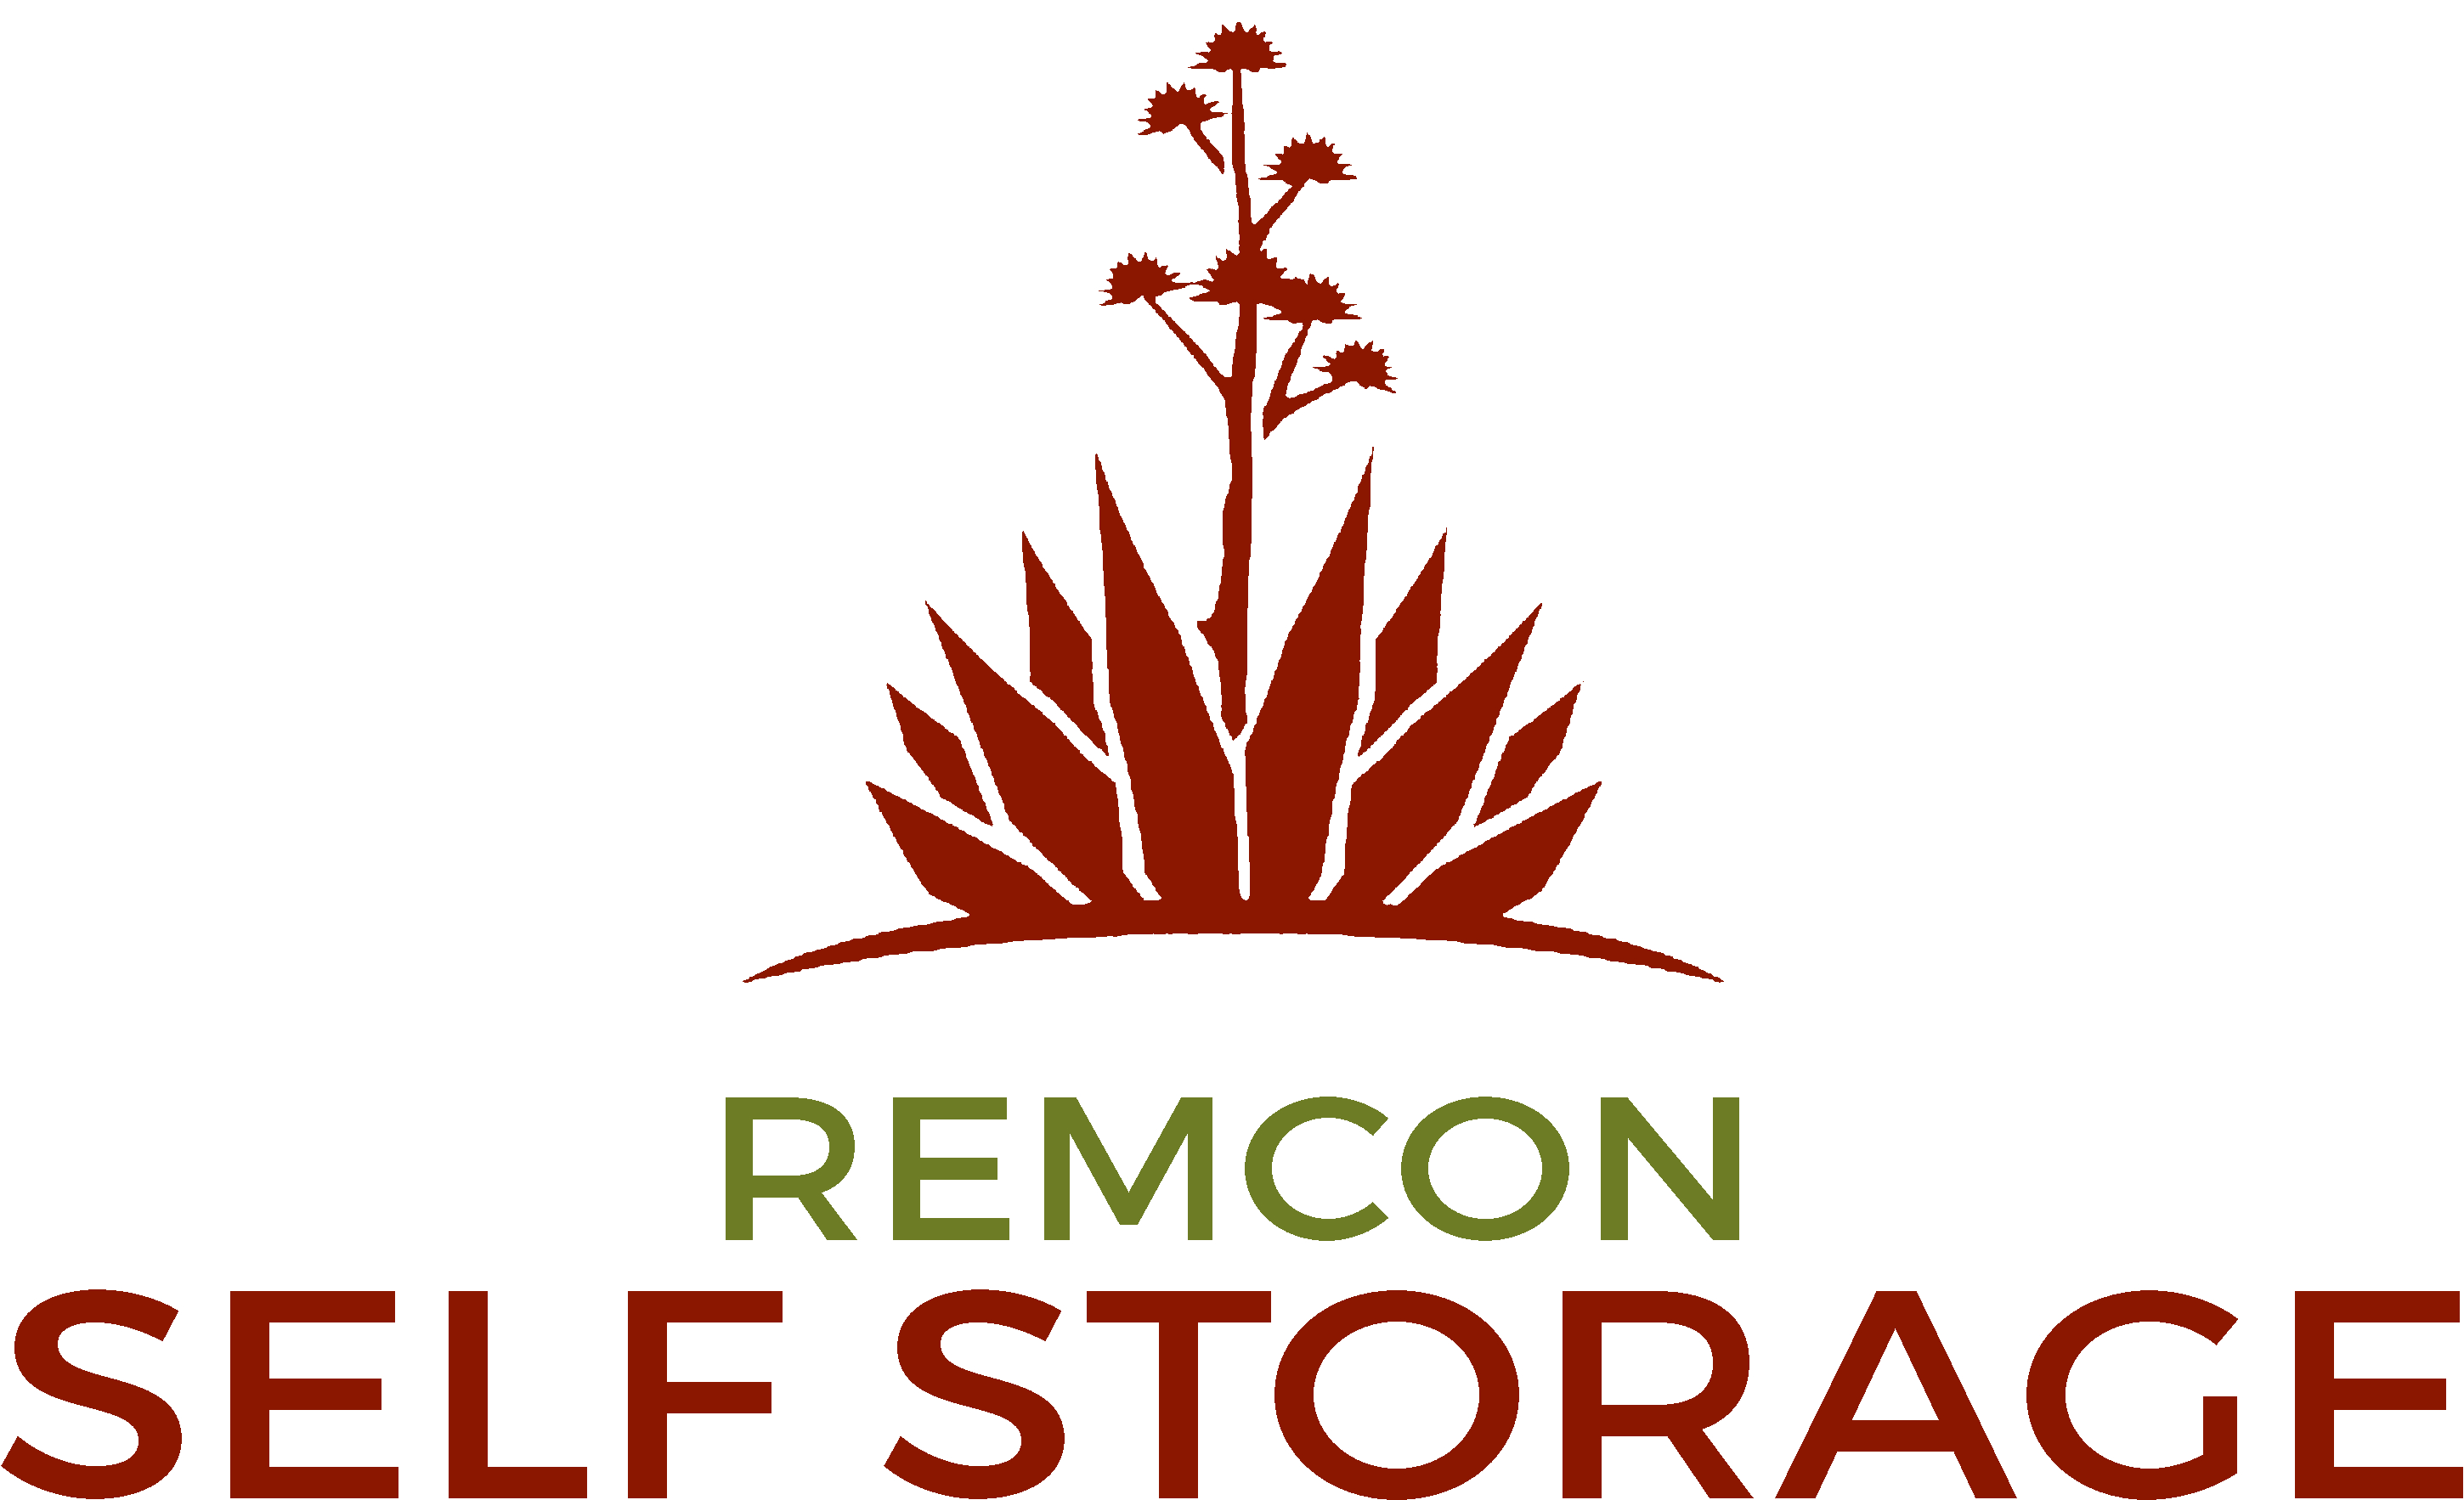 Remcon Self Storage